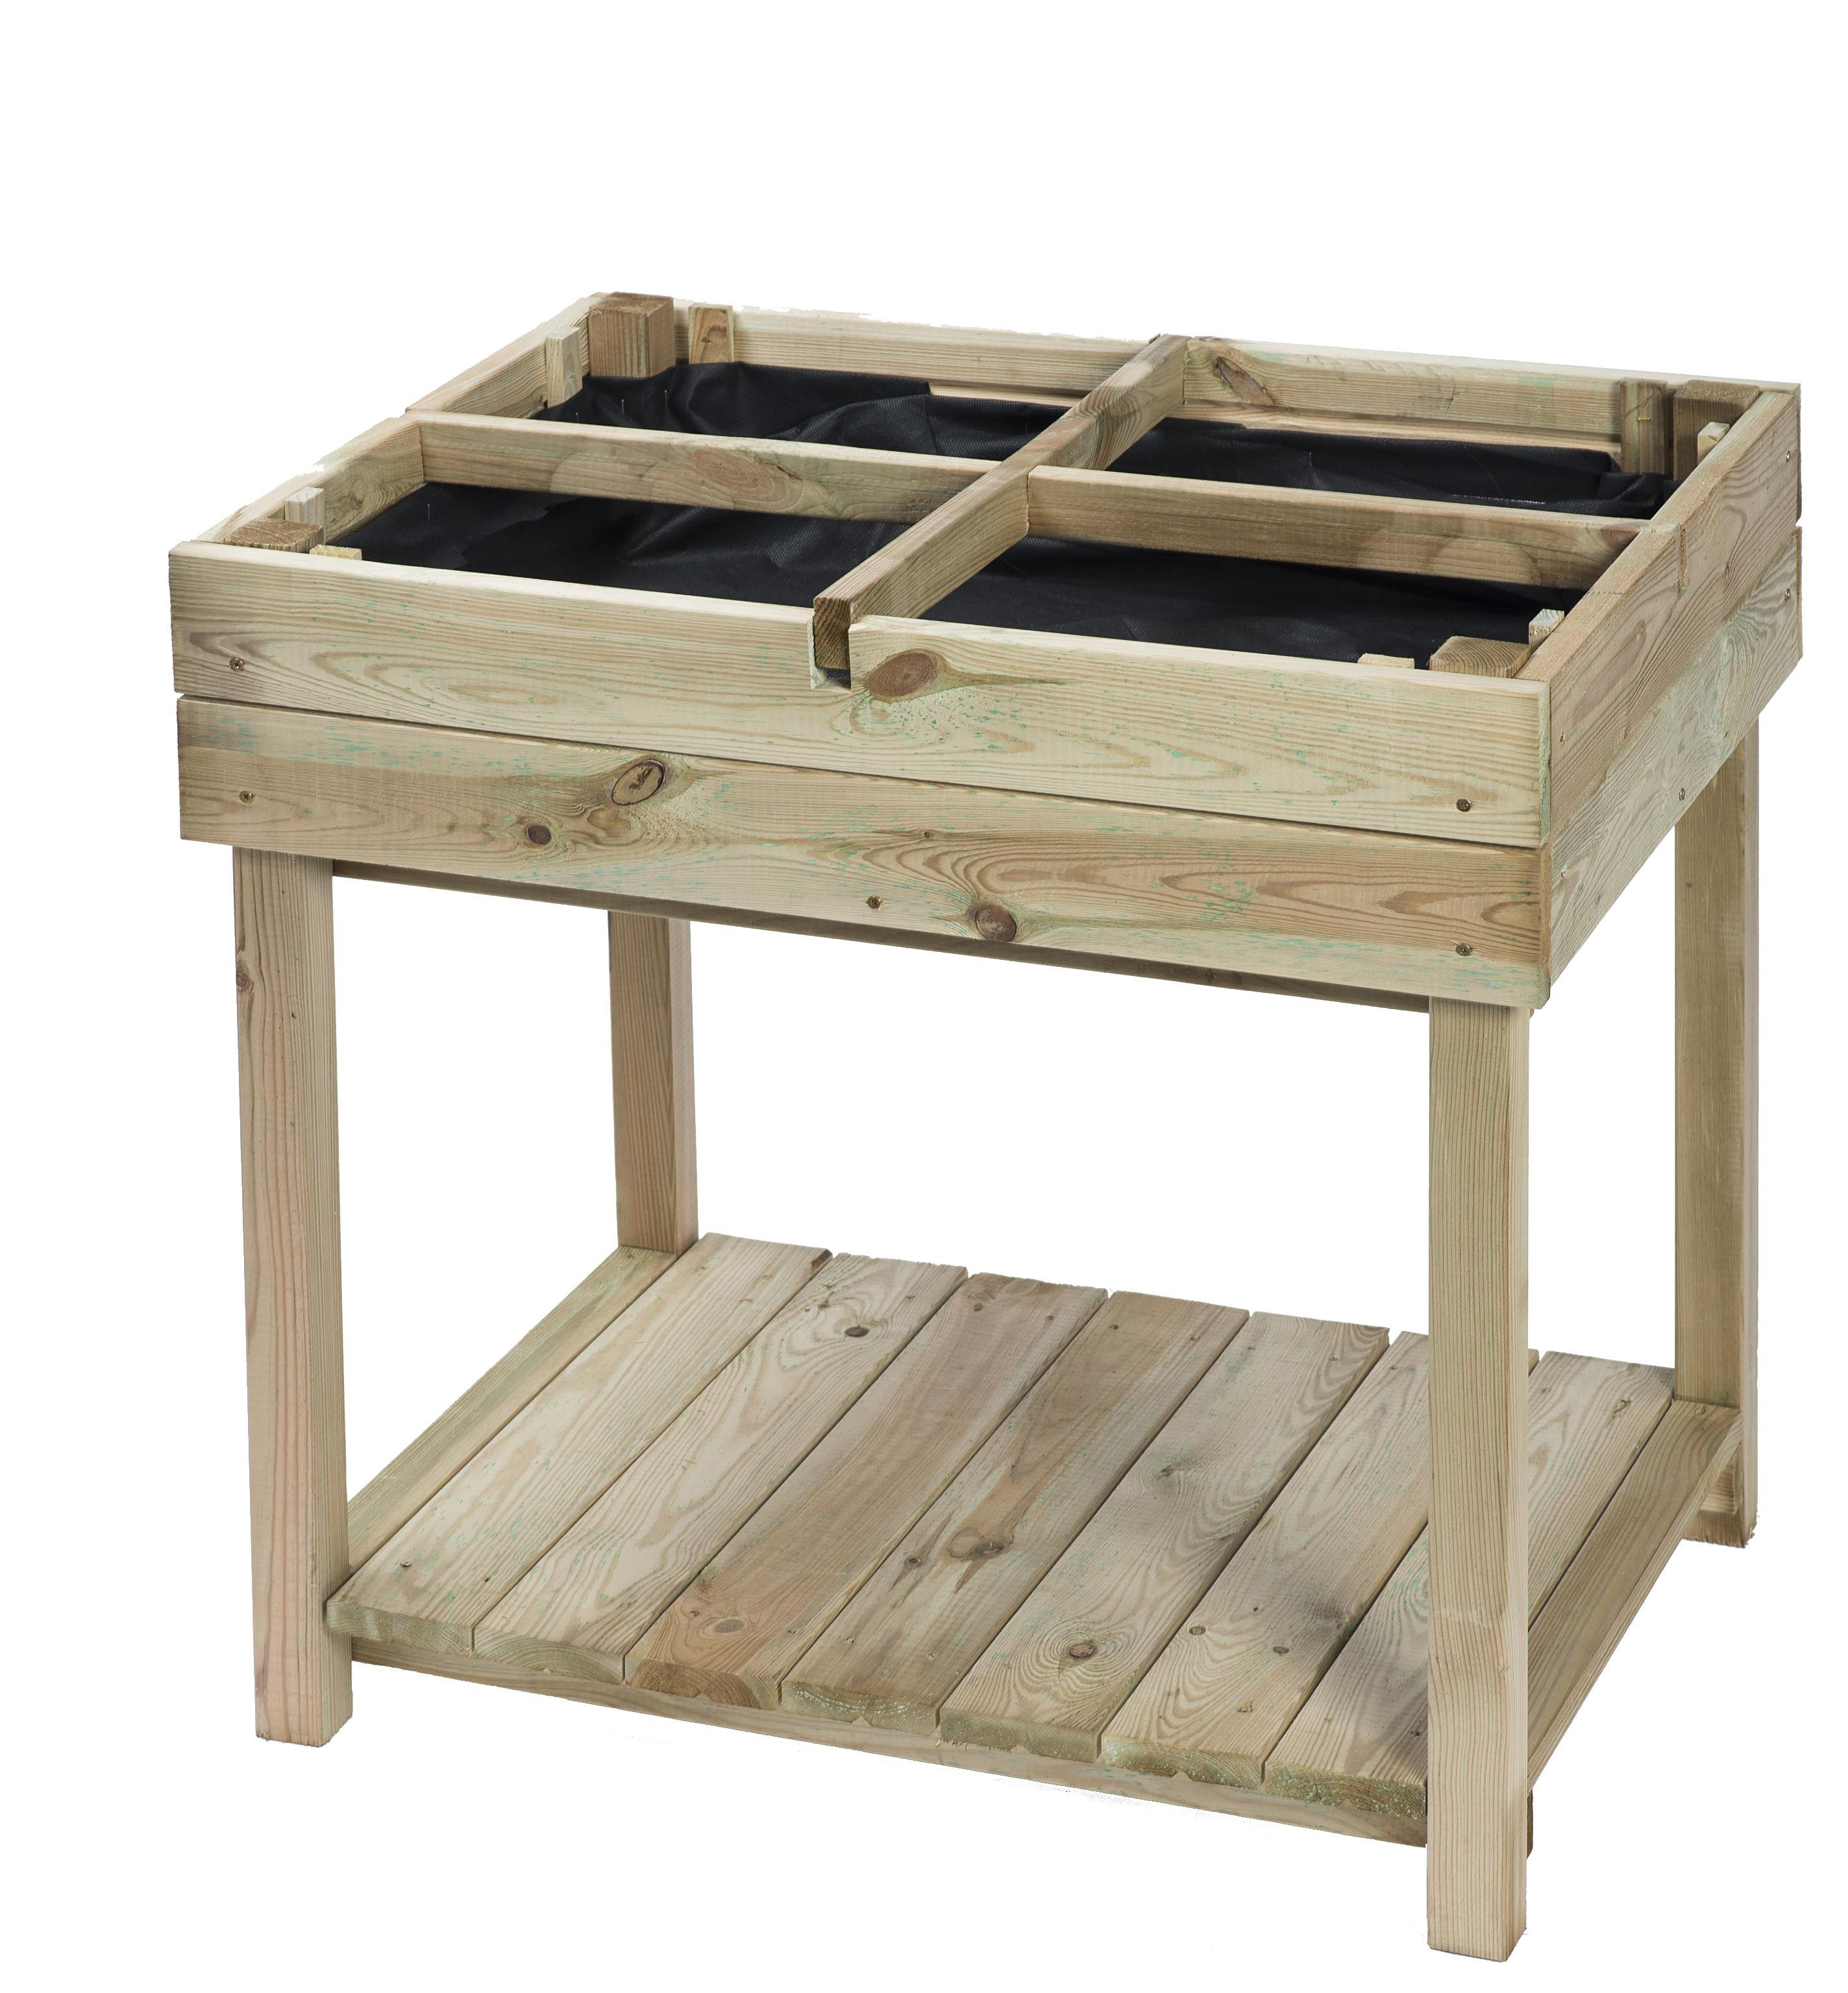 WOODEN GARDEN TABLE SQUARE 4 COMPARTMENTS H80X80X60CM